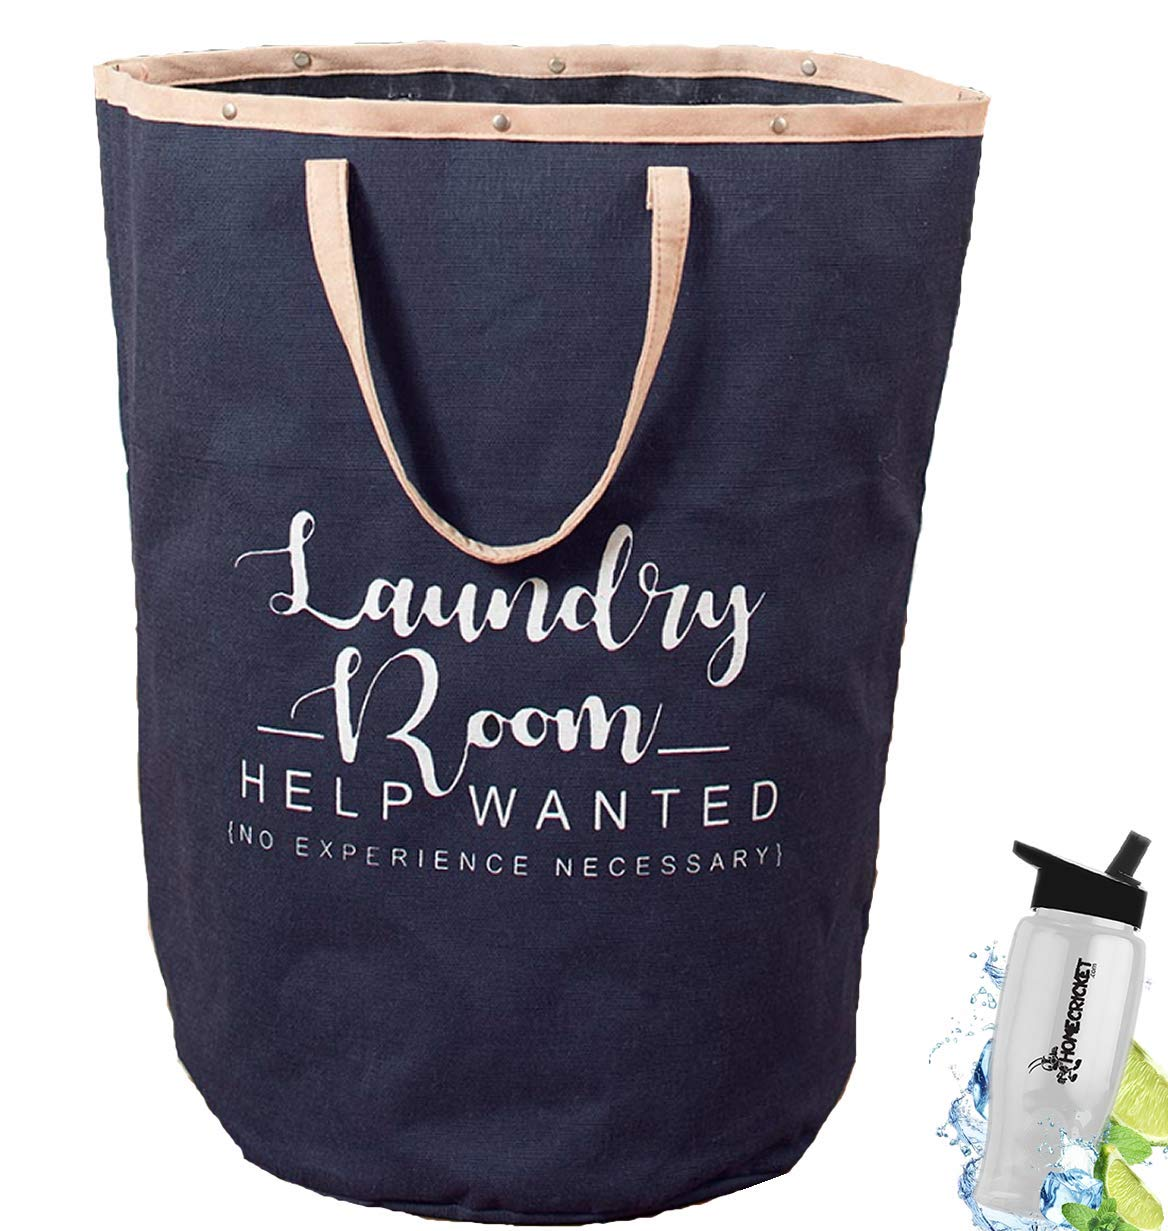 Gift Included- Jumbo Large Laundry Tote Bag With Handles For Laundry Room or Storage Navy + FREE Bonus Water Bottle by Home Cricket